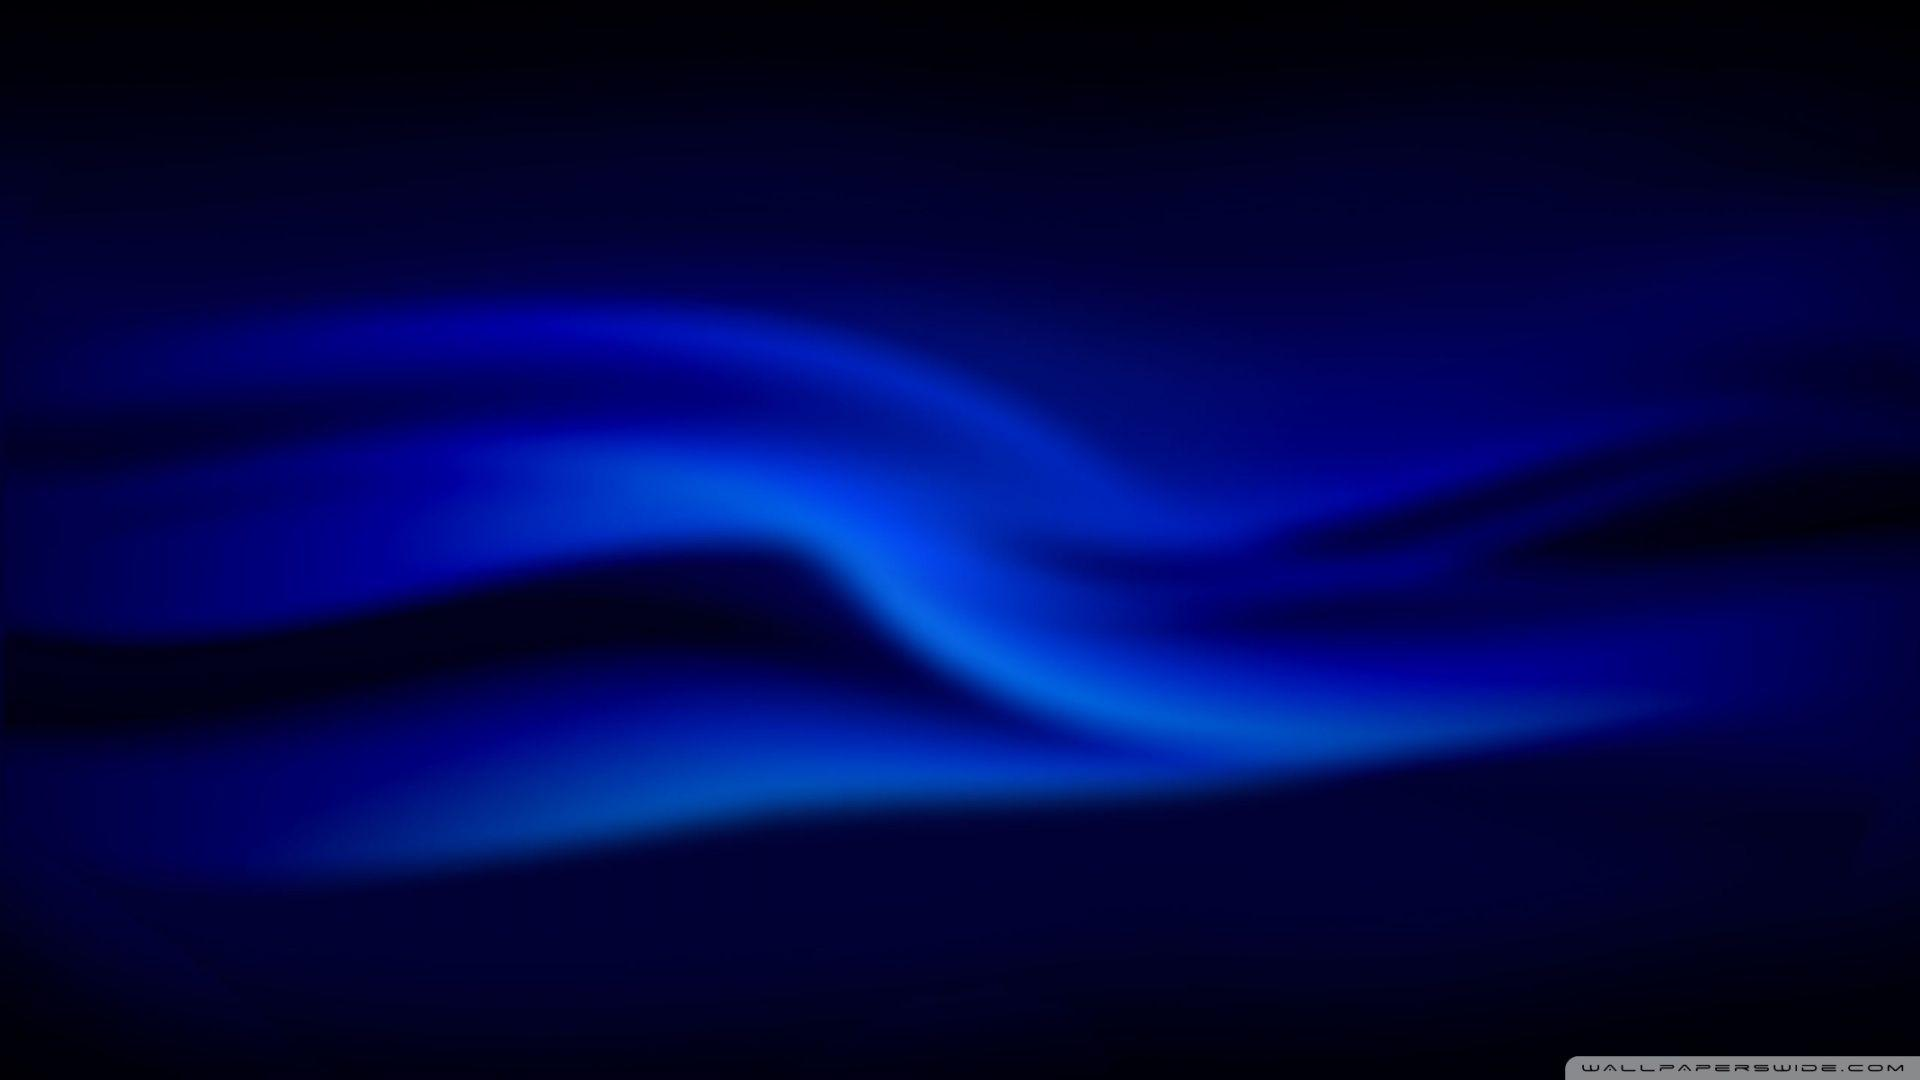 Dark Blue Wallpaper 36 Backgrounds | Wallruru.